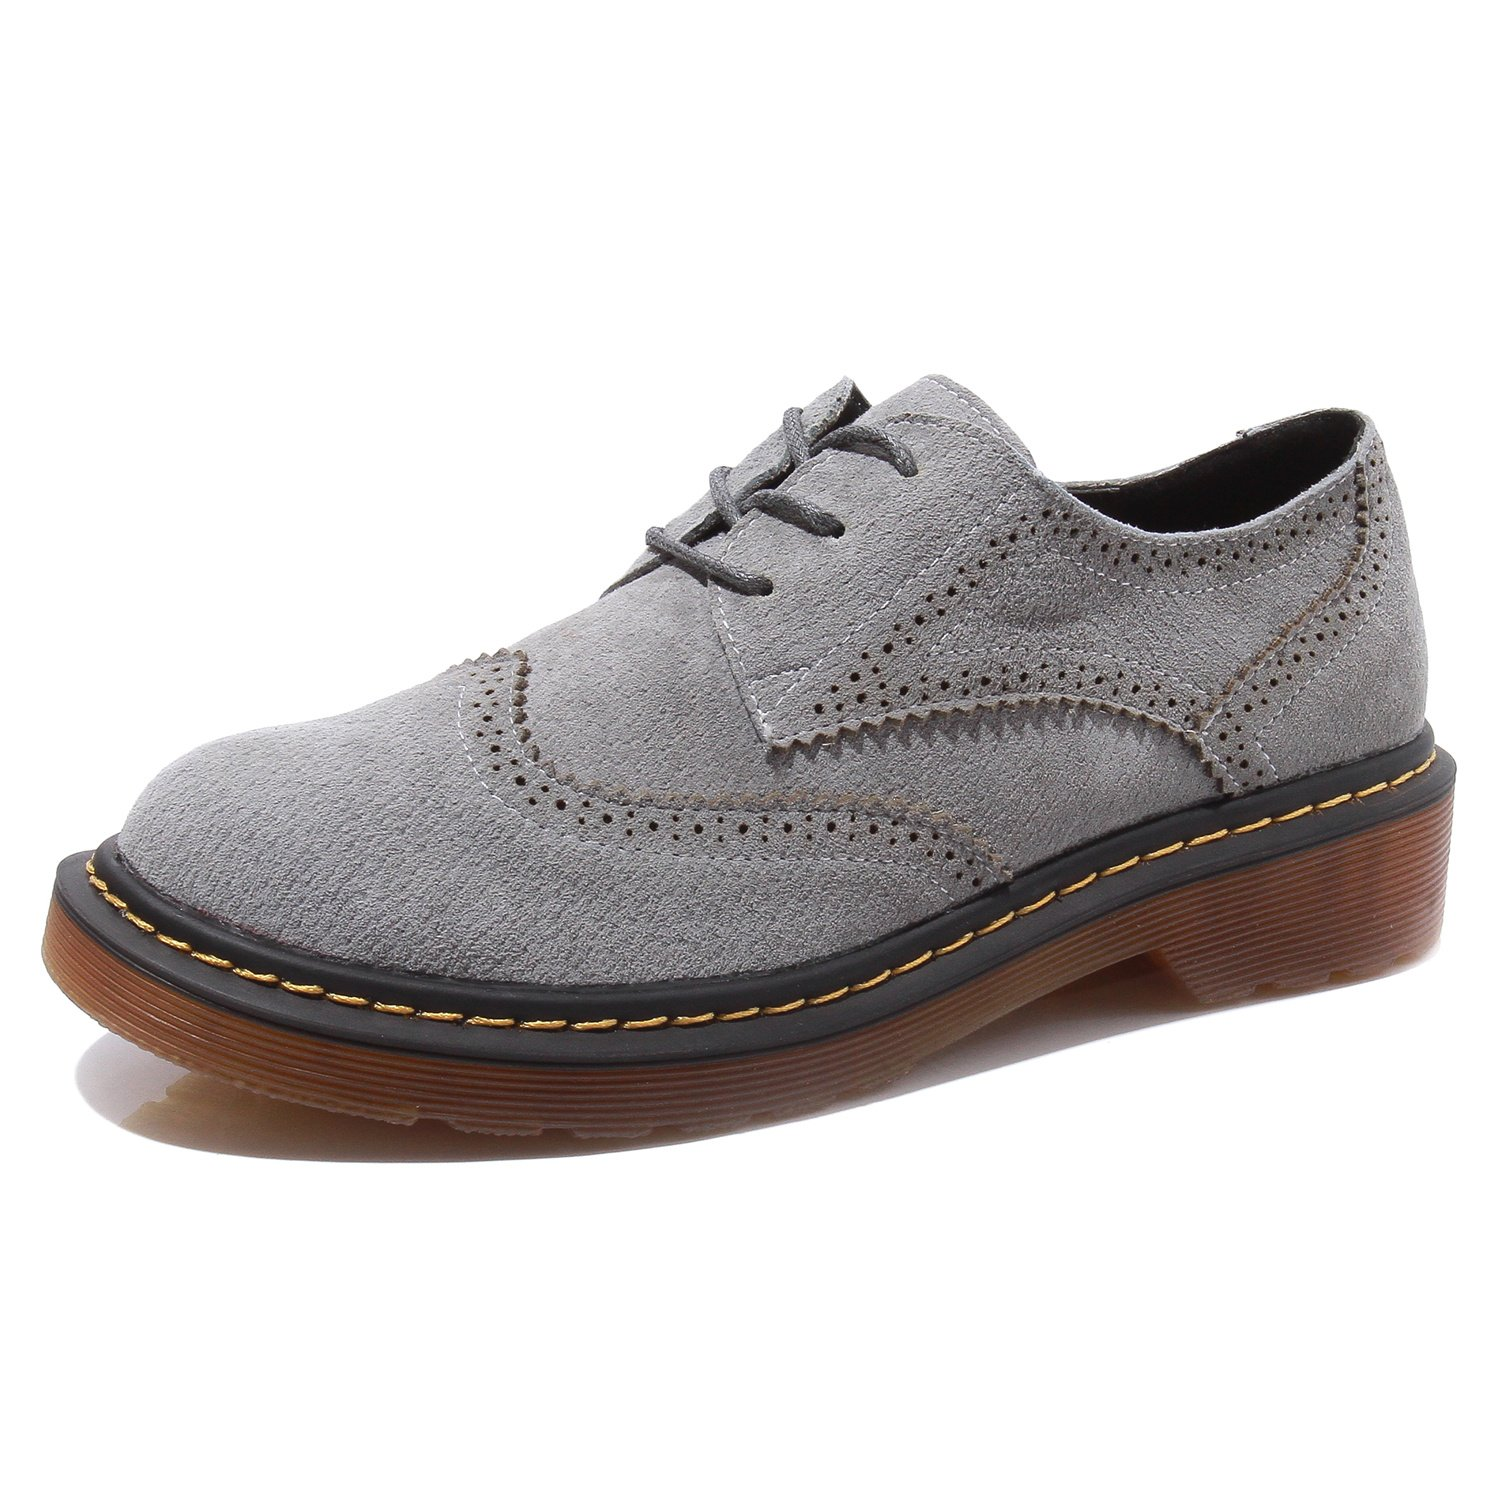 Smilun Womens Classic Derby Shoes 3 Eyes Lace-Up Flats Tassel Fringe Round Toe Grey Size 9 B(M) US